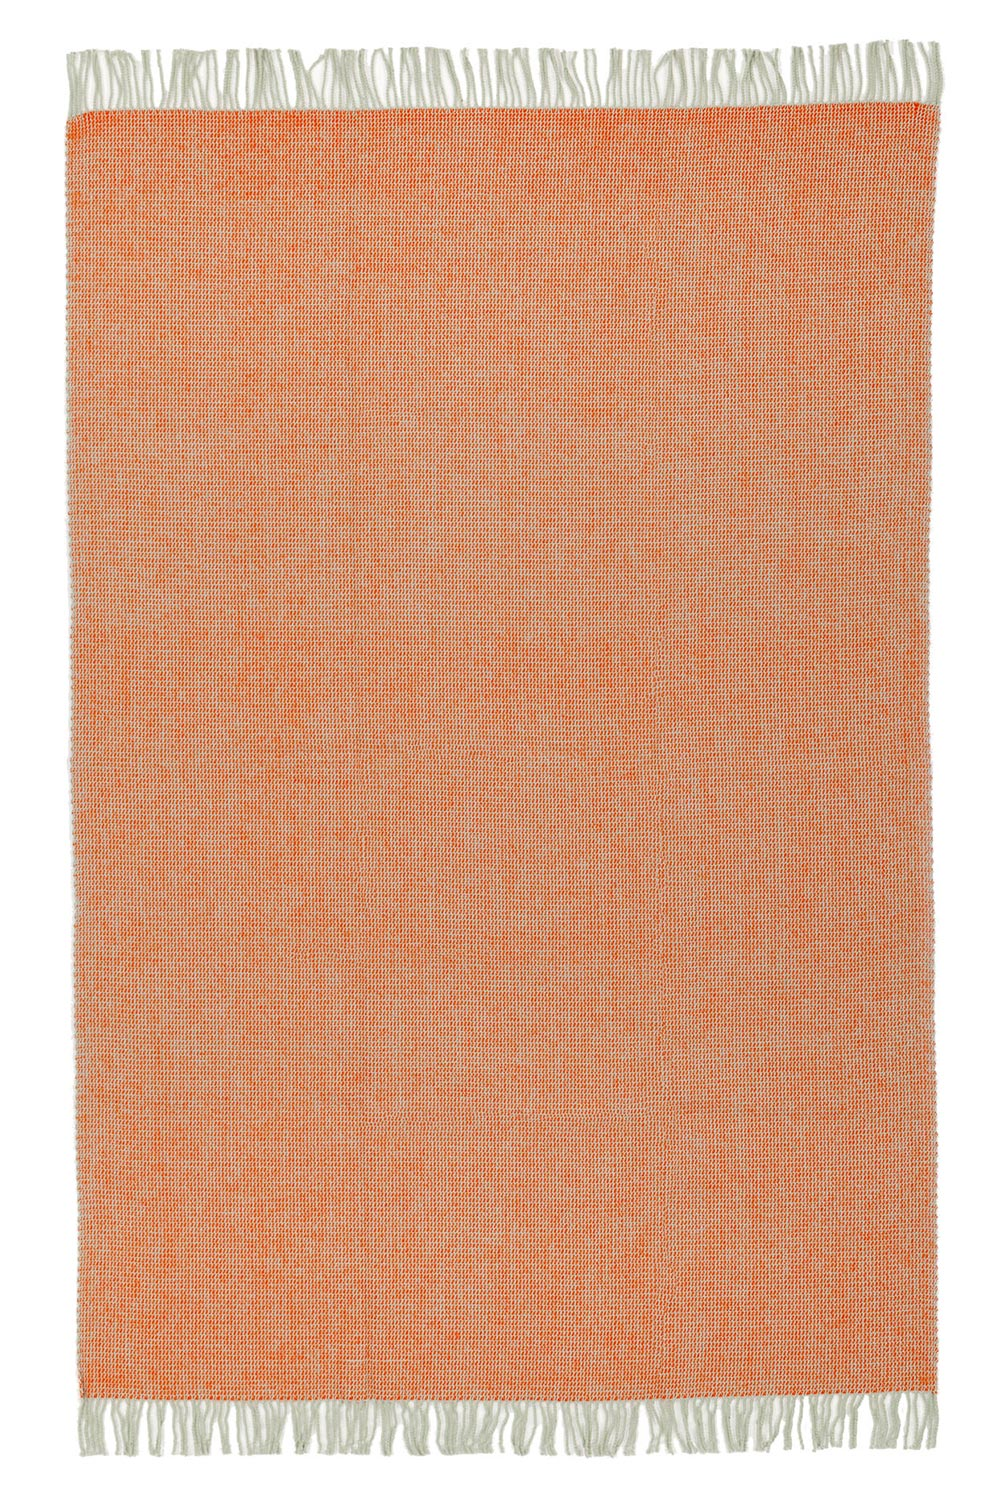 wool blanket in orange color with fringes, spread out